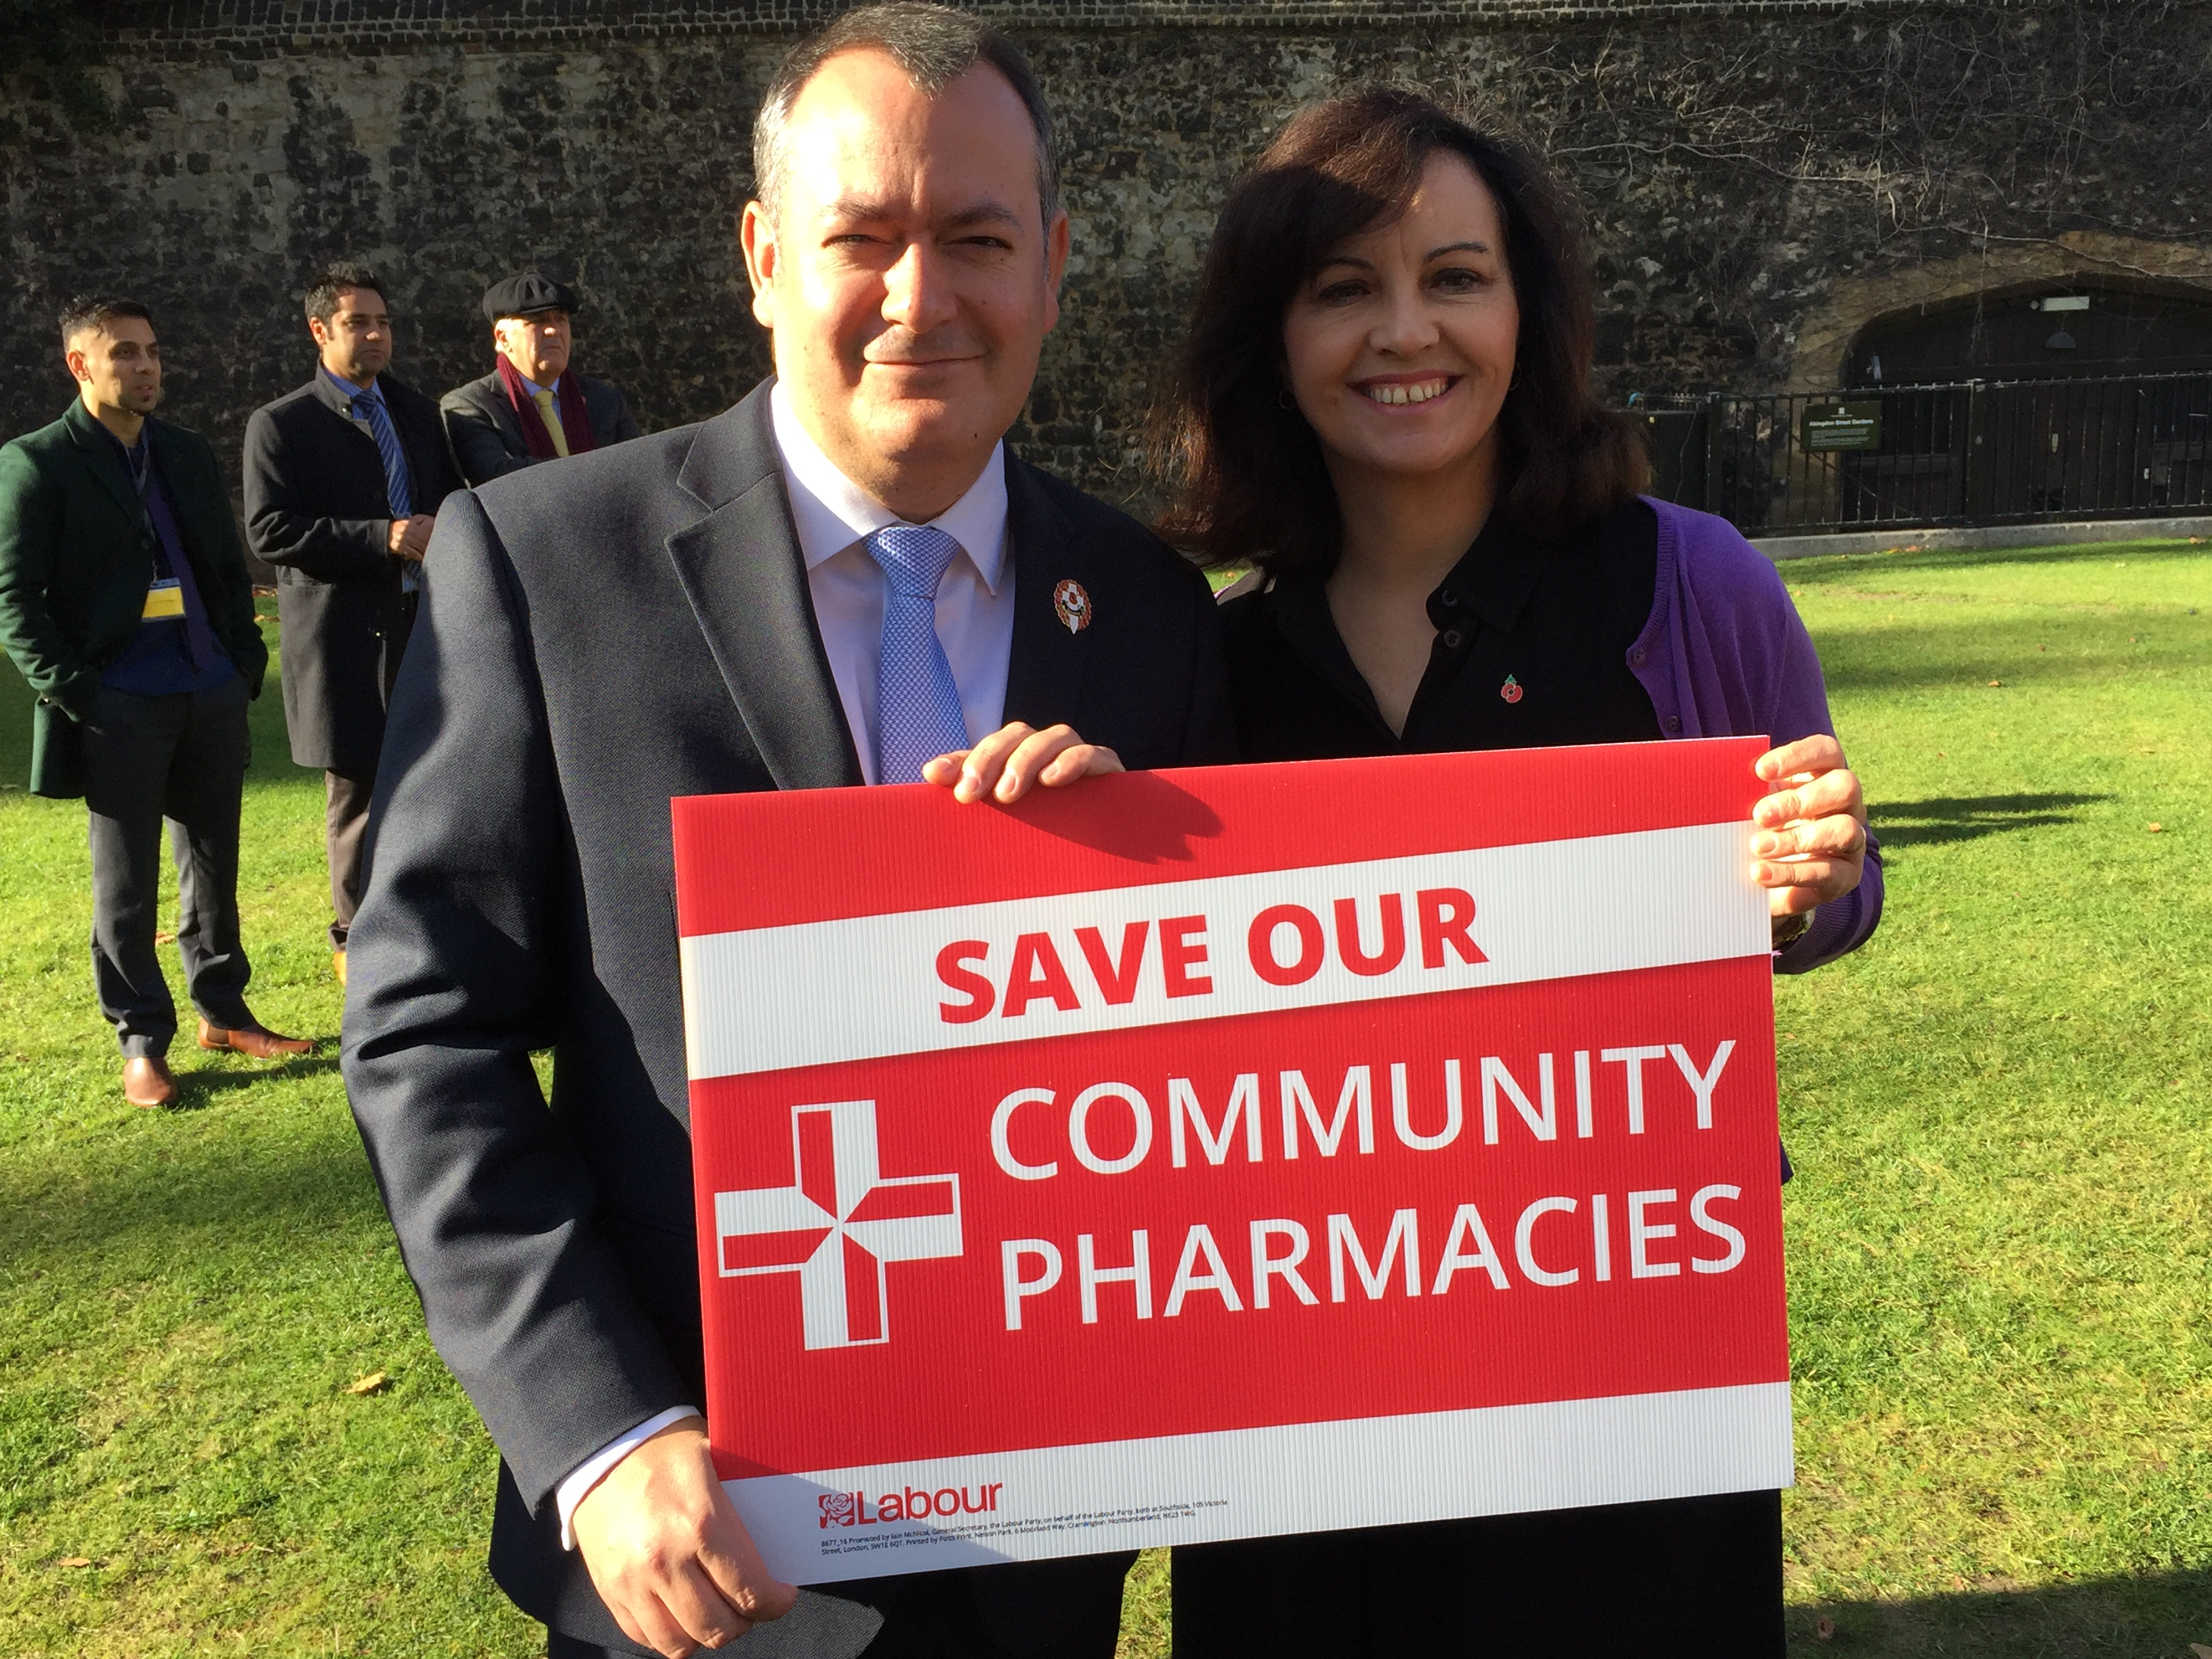 Caroline_Flint_Michael_Dugher_-_Pharmacies.JPG